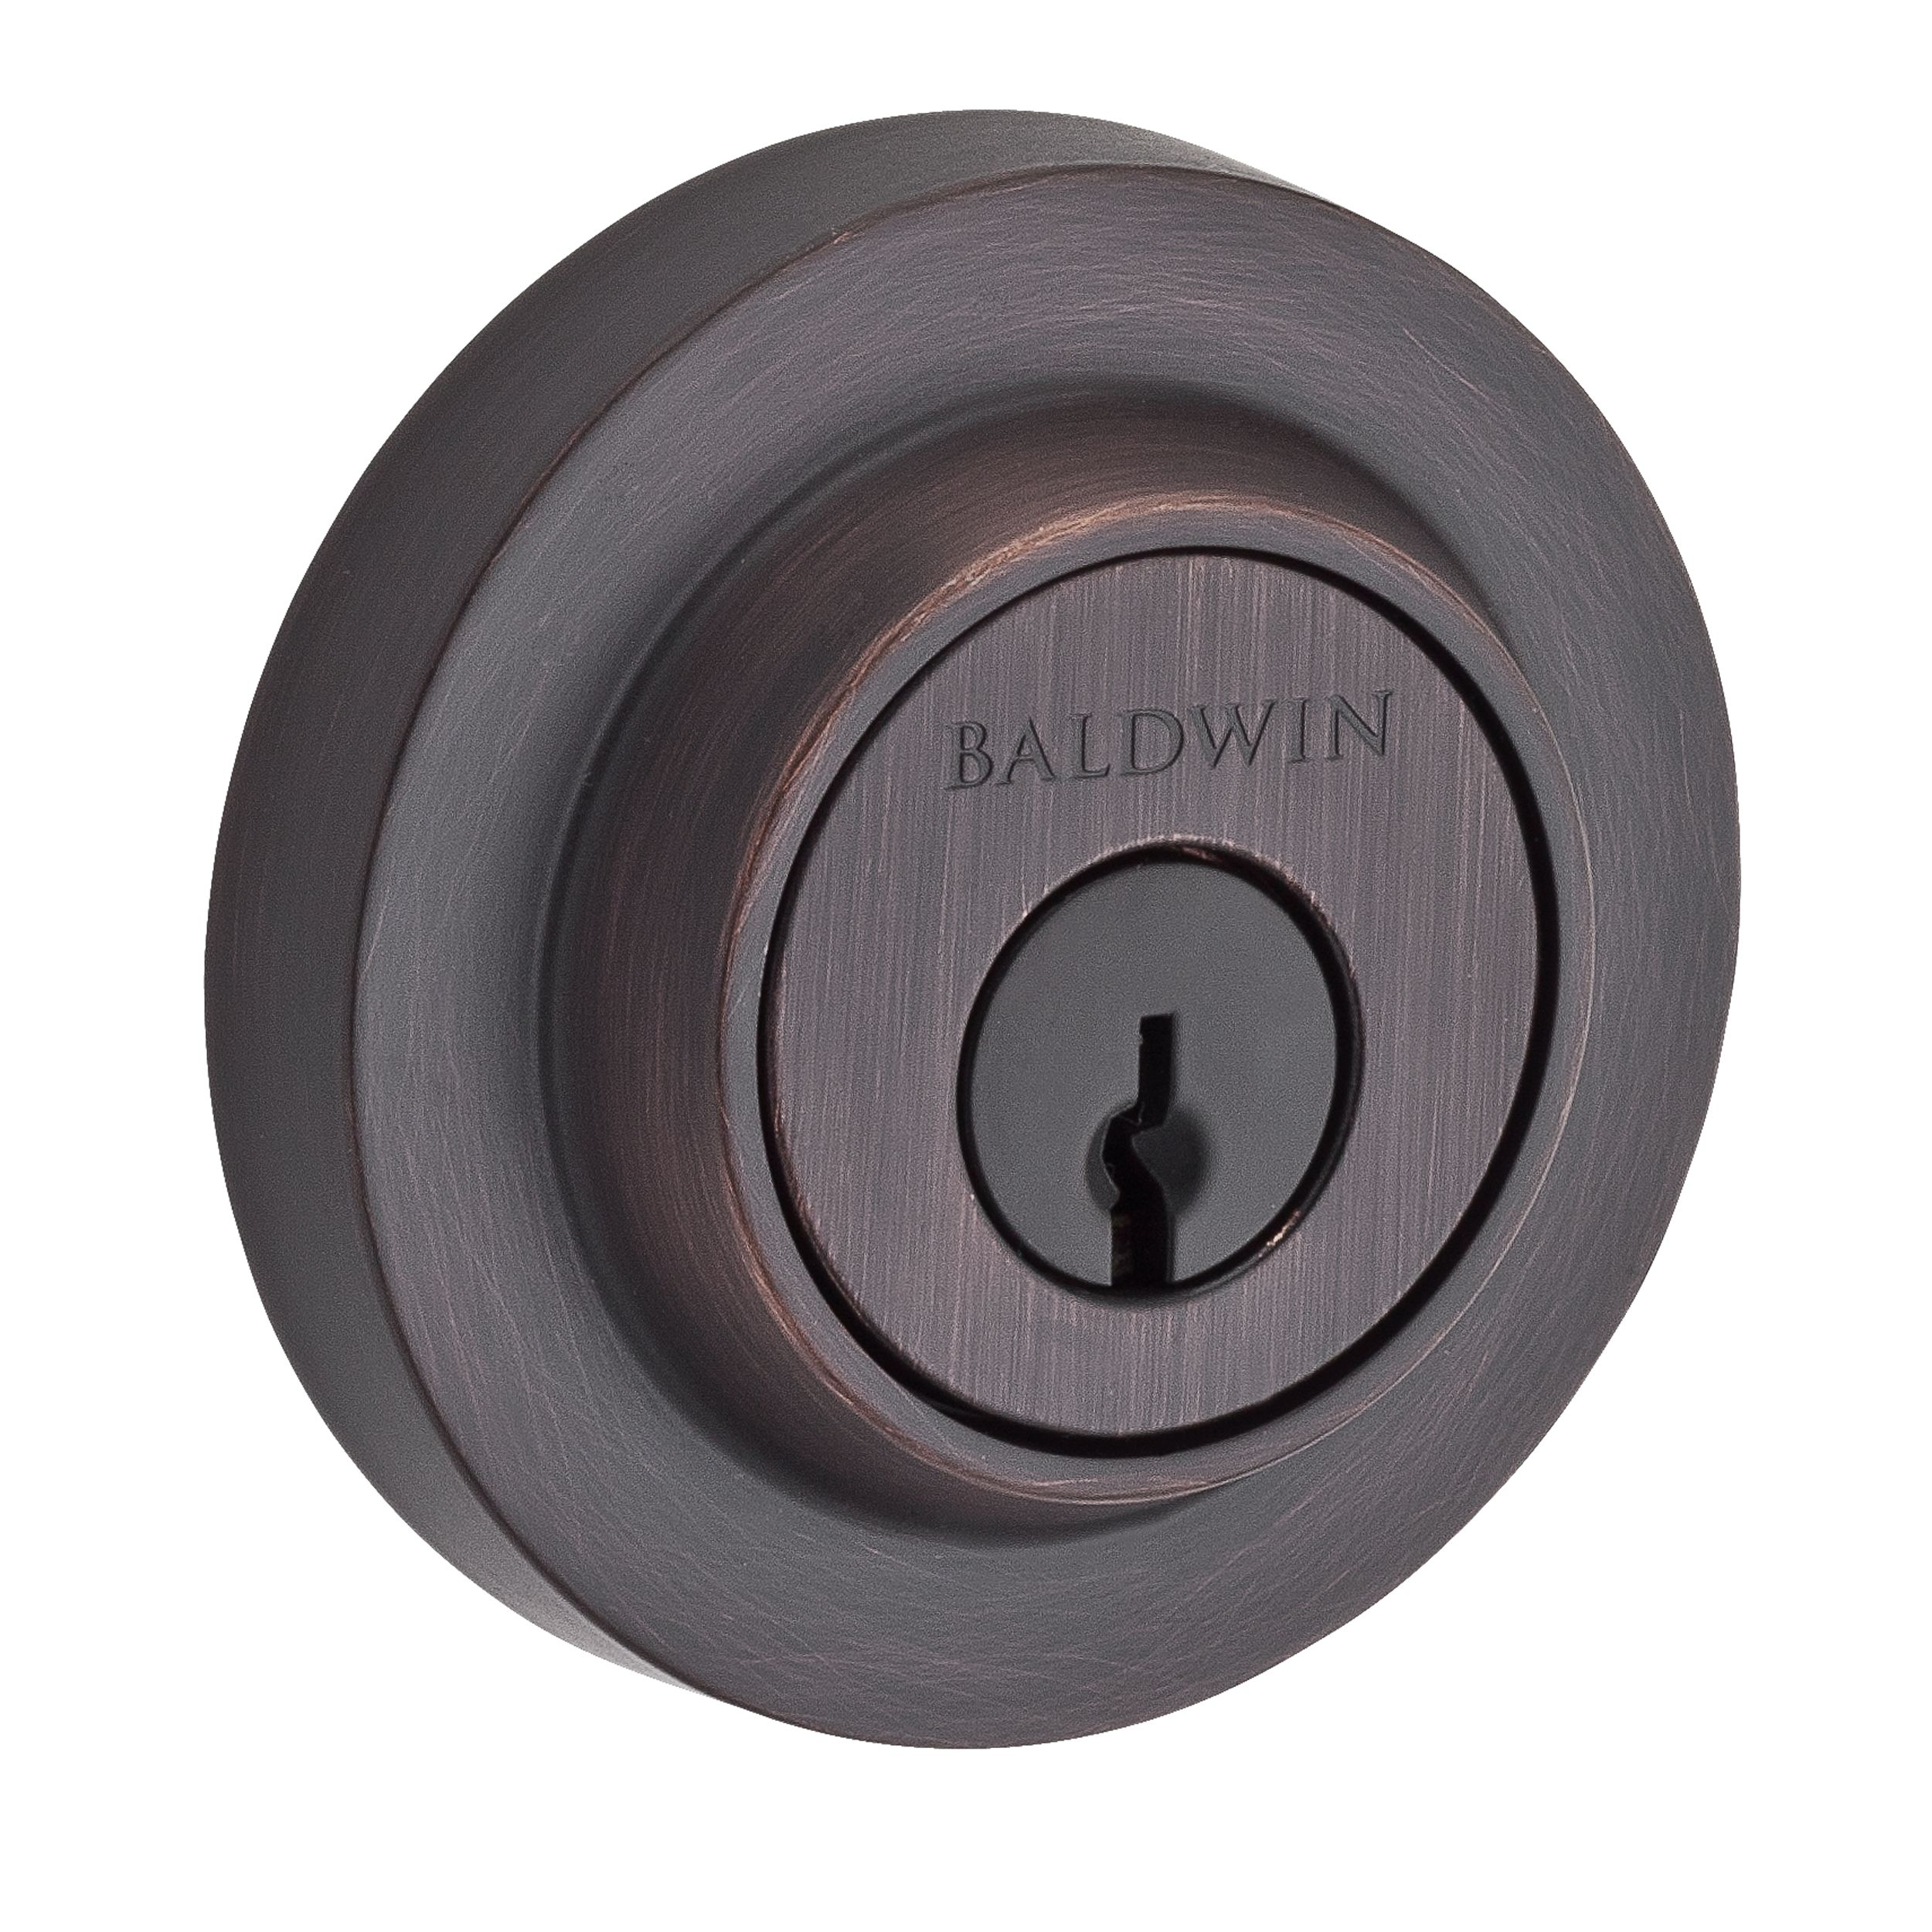 Contemporary Round Deadbolt